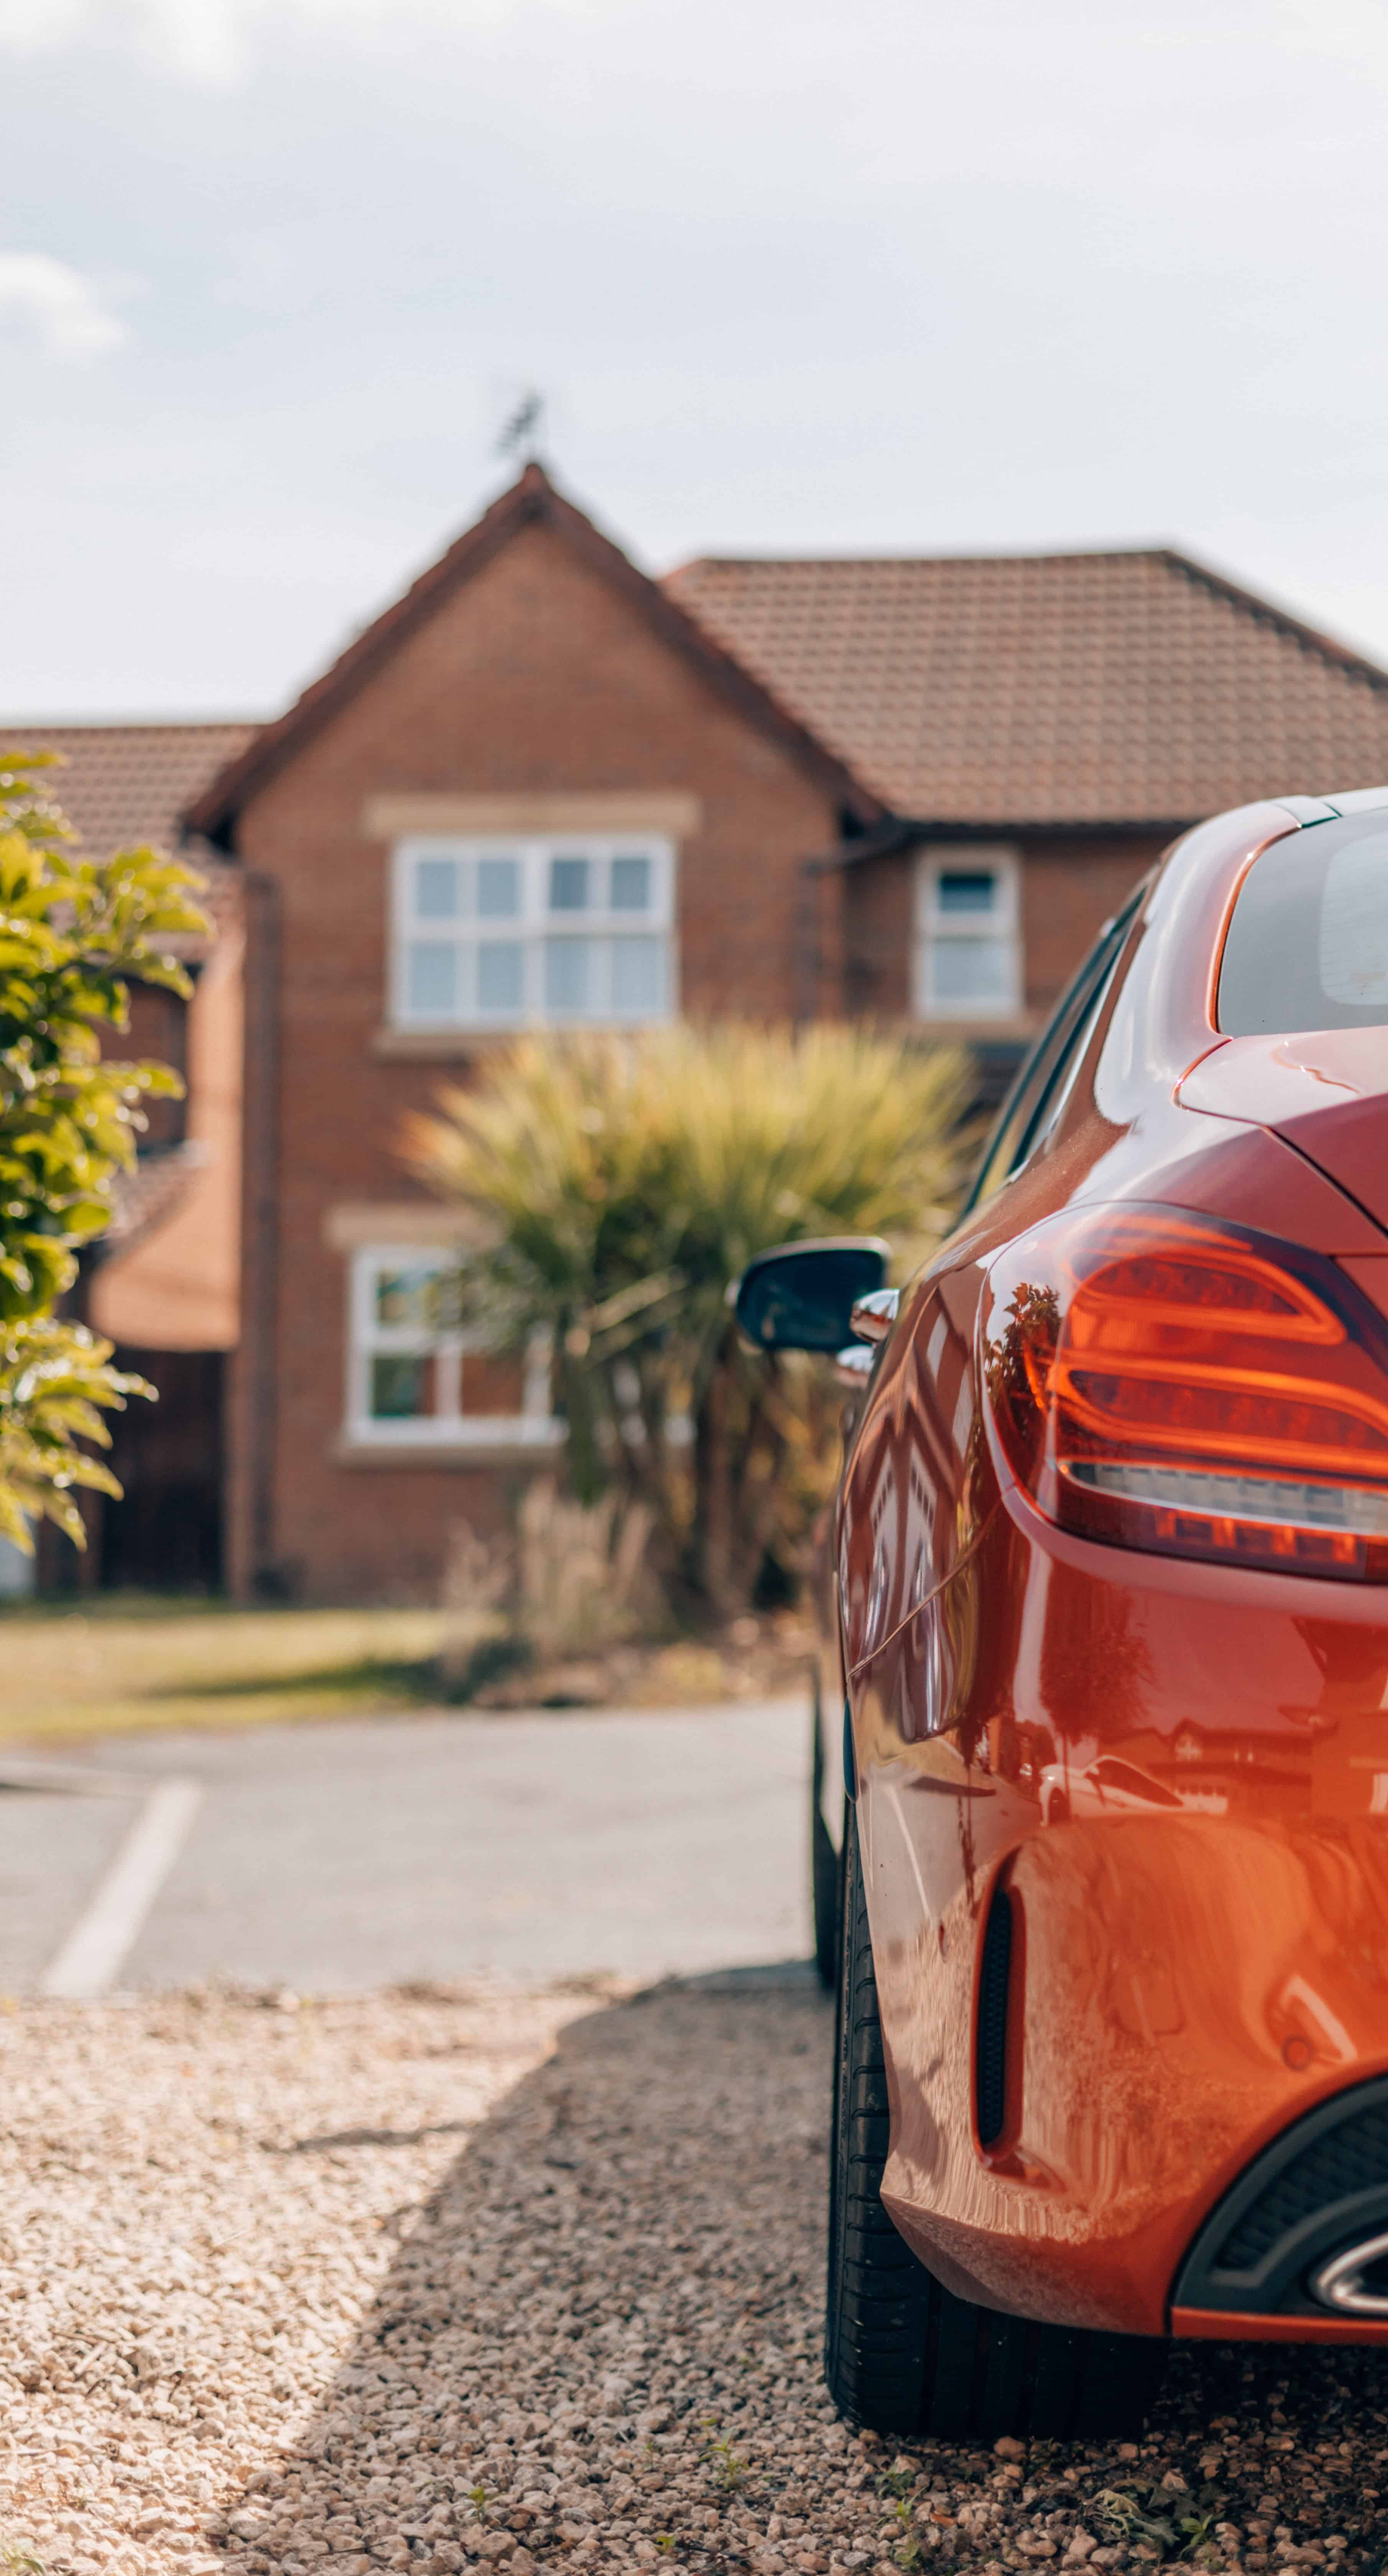 Do you know that you can rent out your driveway as a tax free way of earning money? Read more here.